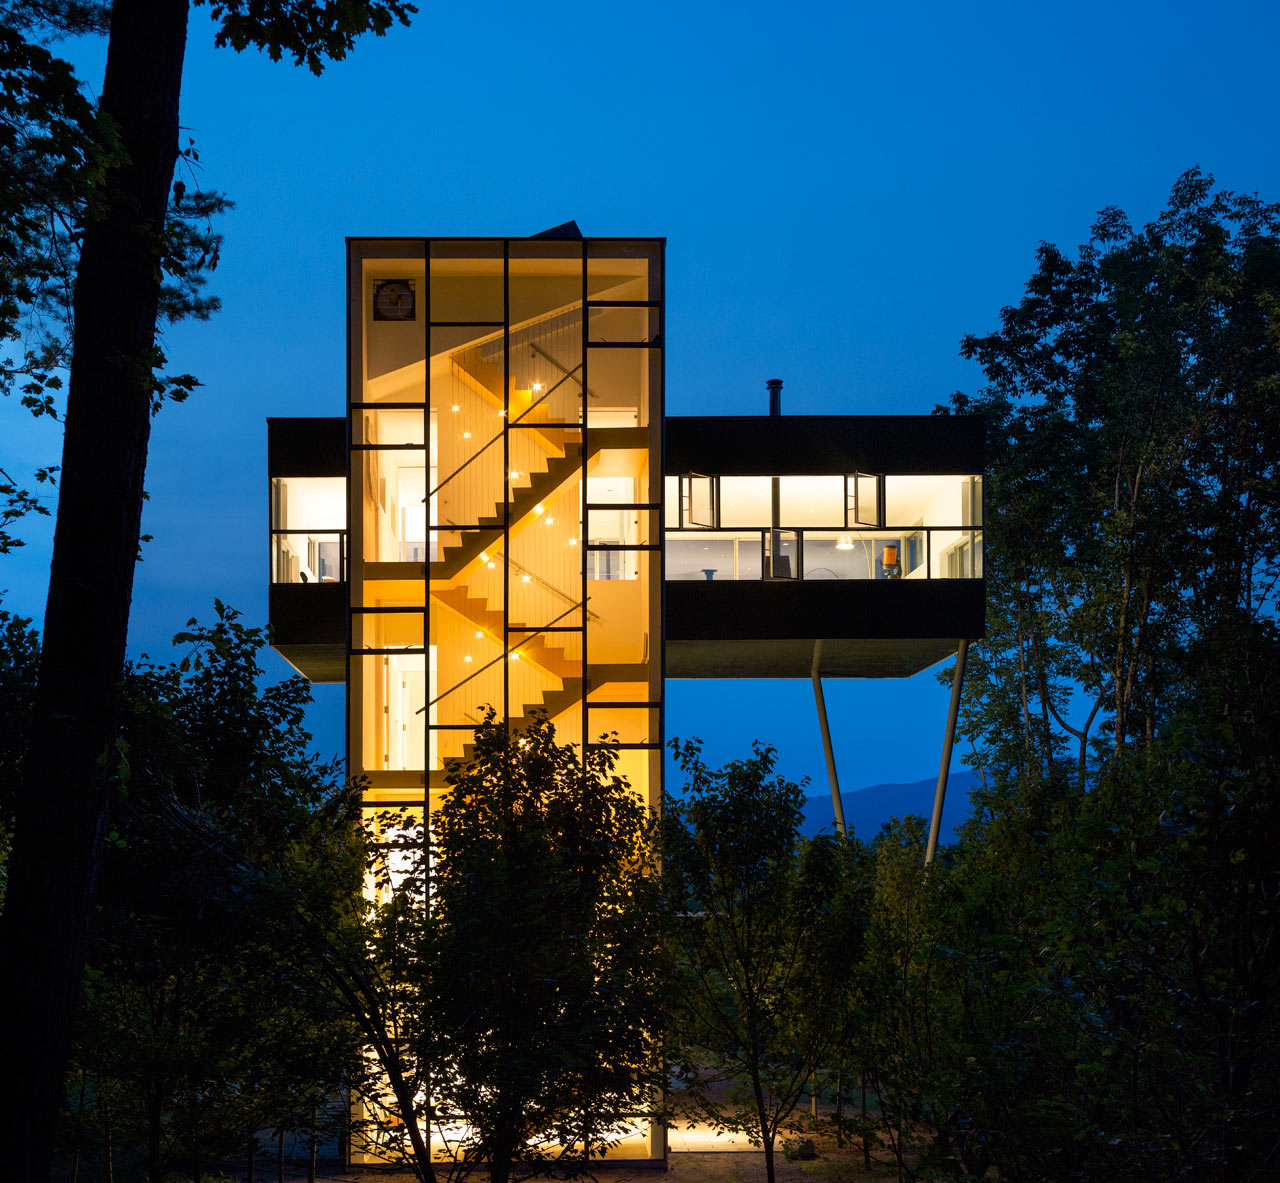 GLUCK+-Tower-House-14-W